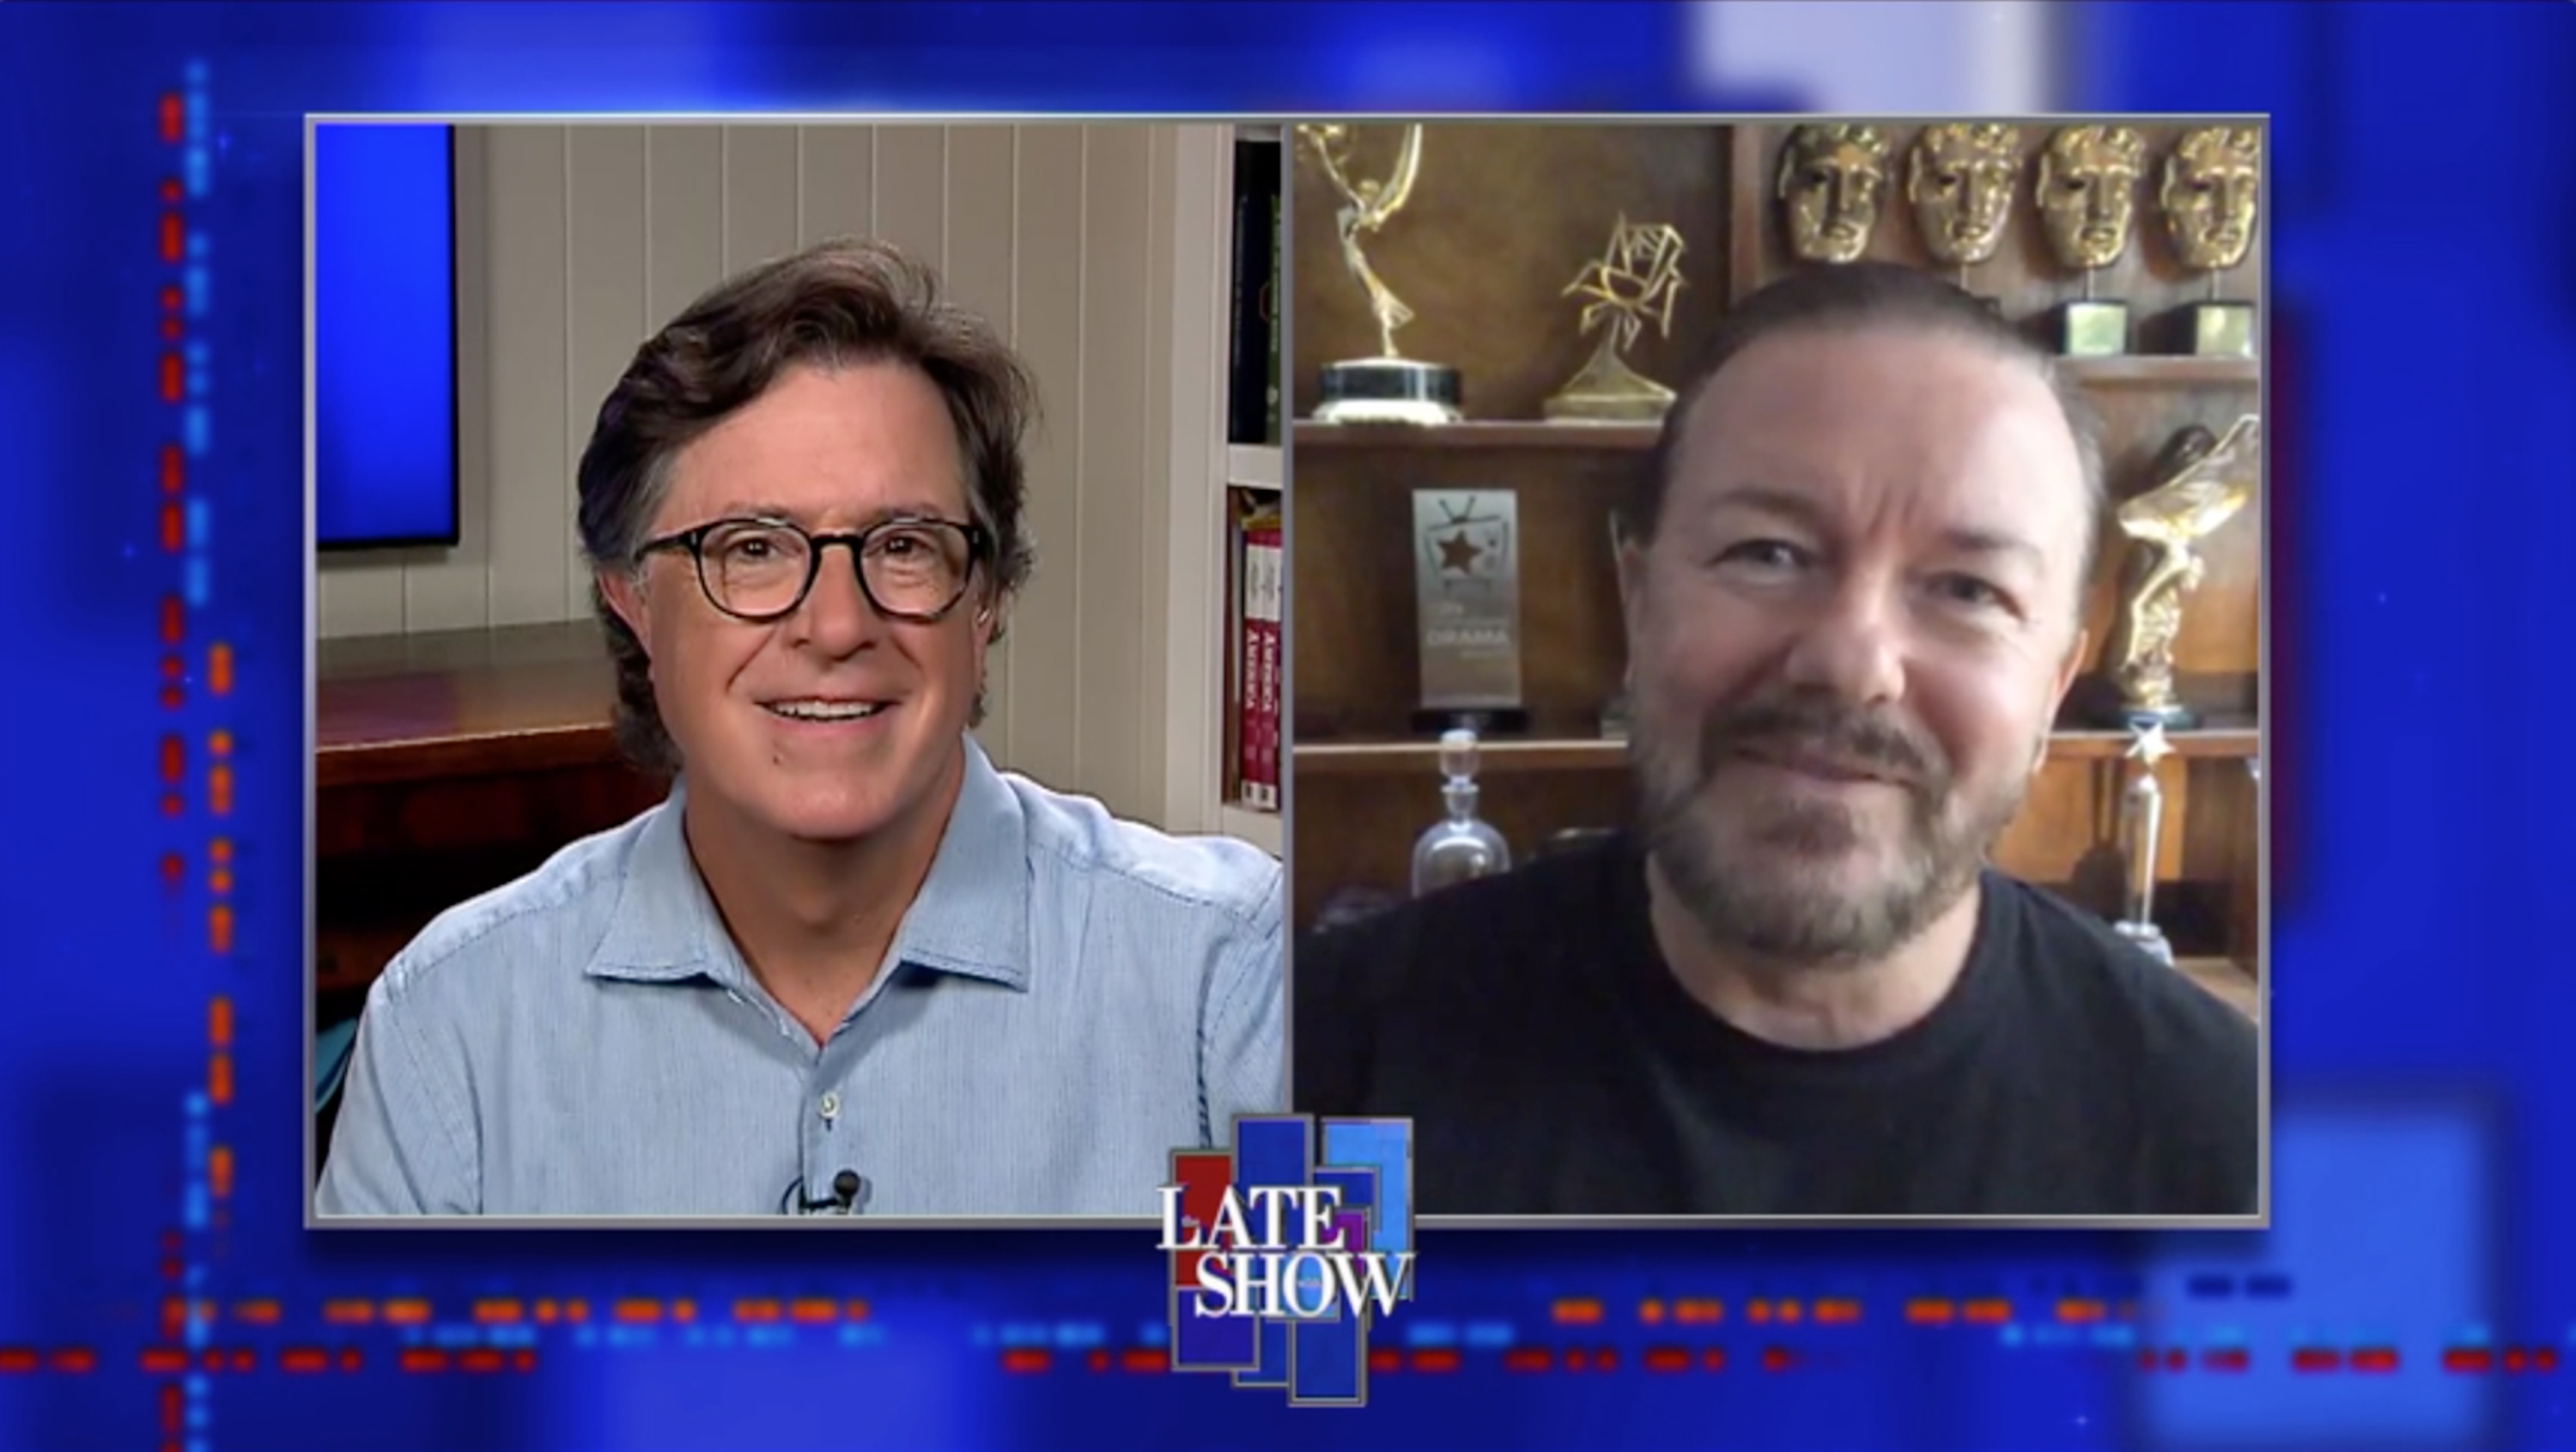 NEW YORK - JULY 15: The Late Show with Stephen Colbert and Ricky Gervais during Wednesday's July 15, 2020 show. Image is a screen grab. (Photo by CBS via Getty Images)